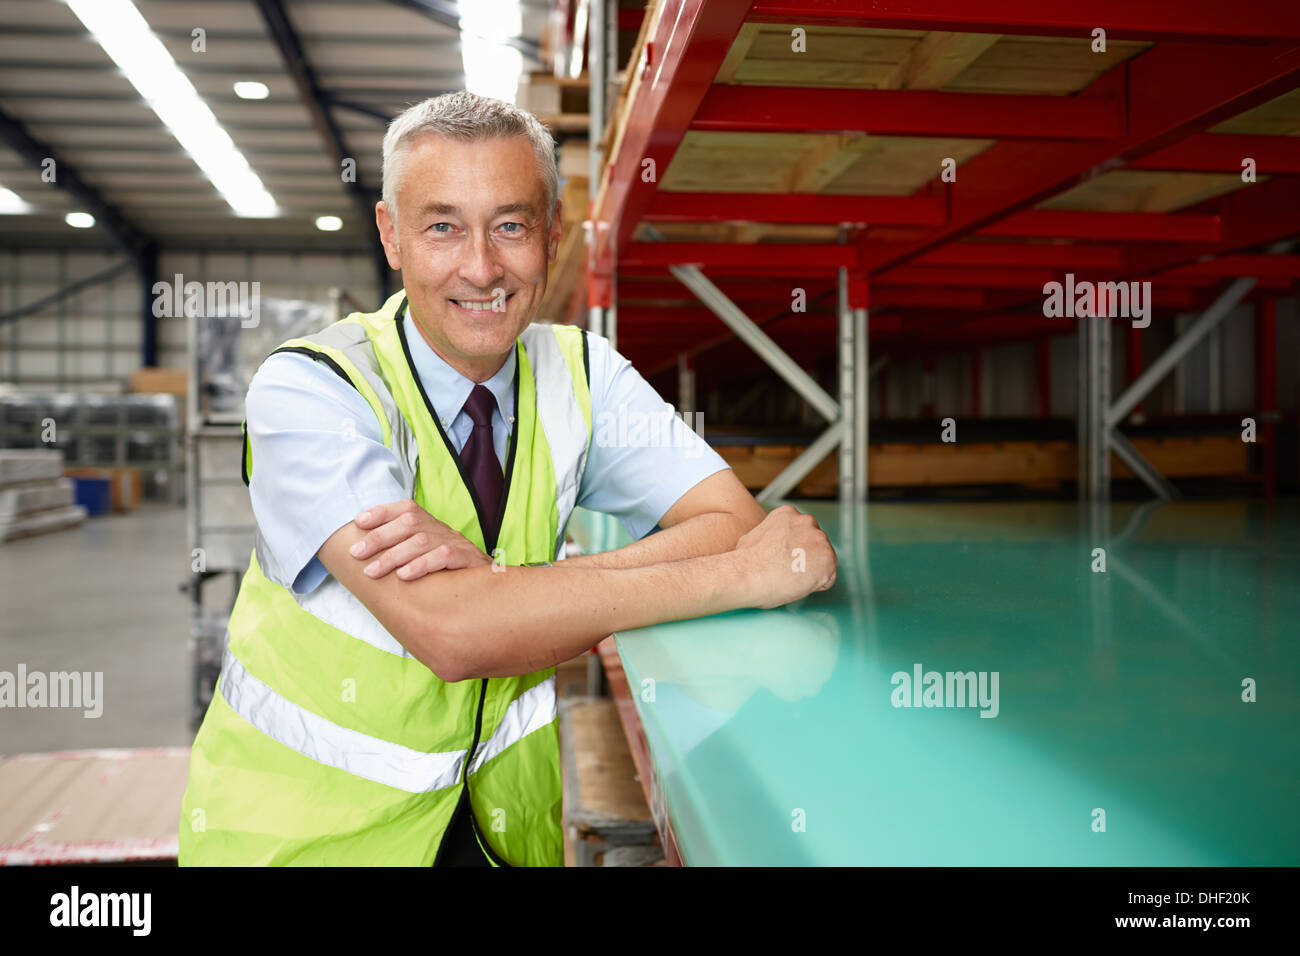 Portrait of warehouse manager in engineering warehouse - Stock Image